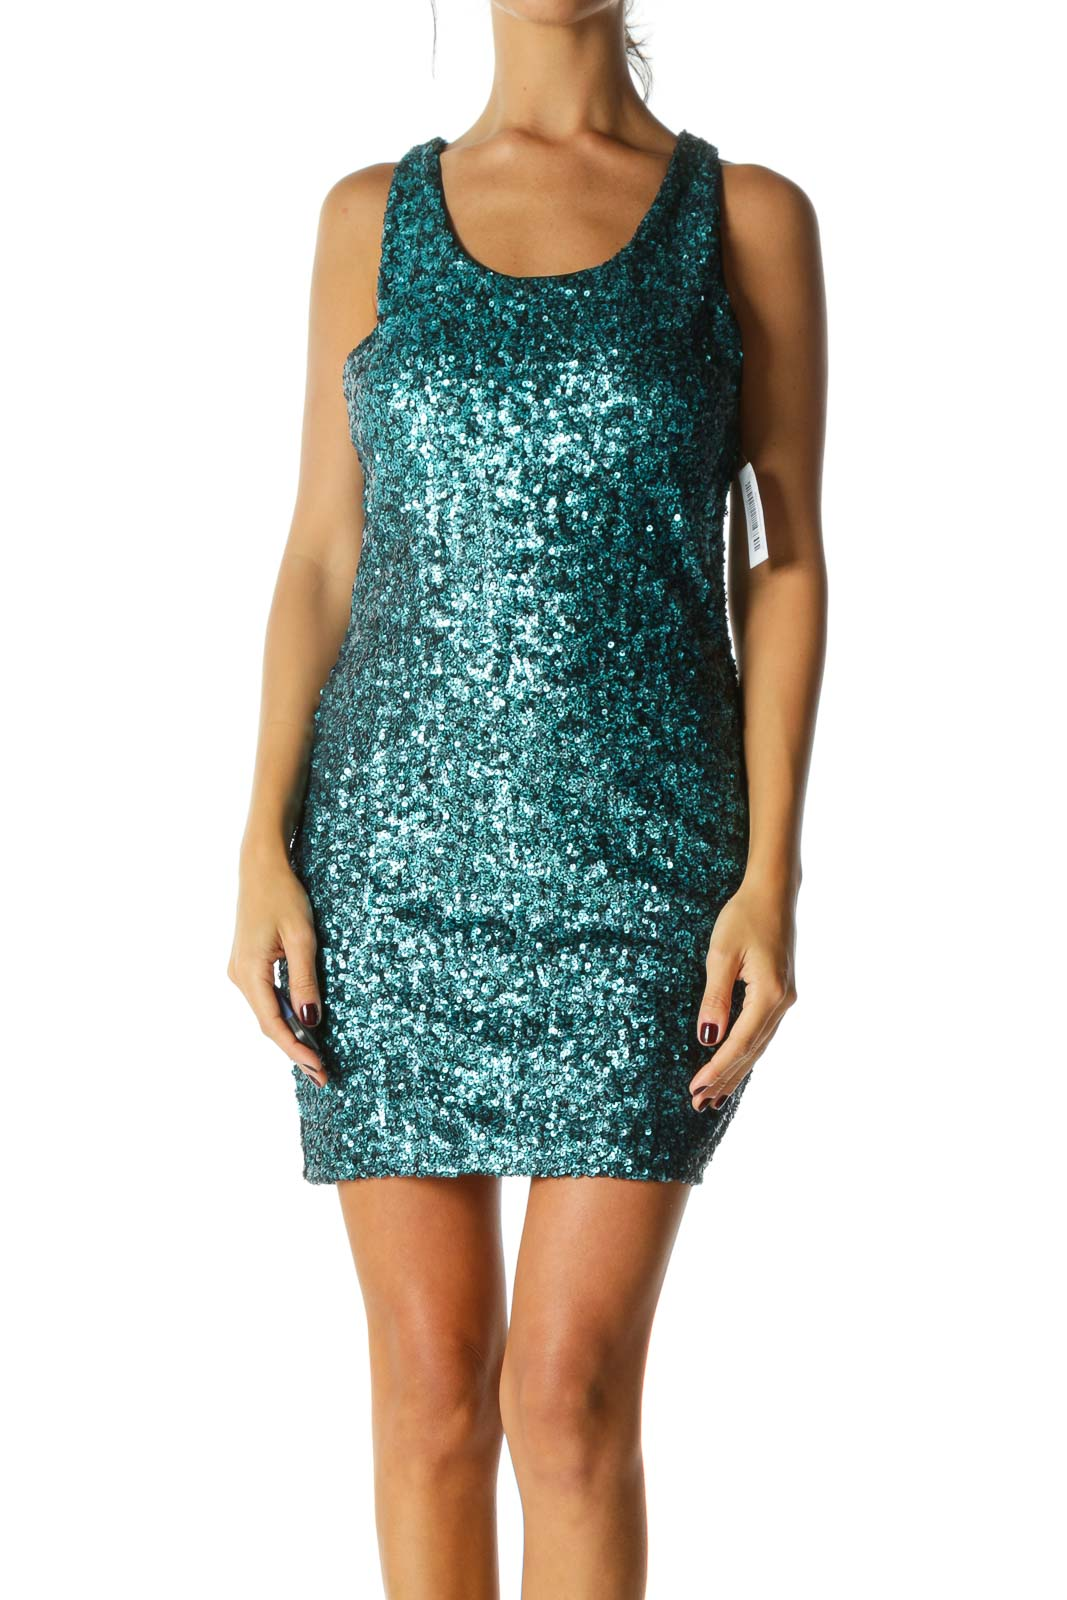 Blue Black Shiny Sequined Body Round Neck Cocktail Dress Front